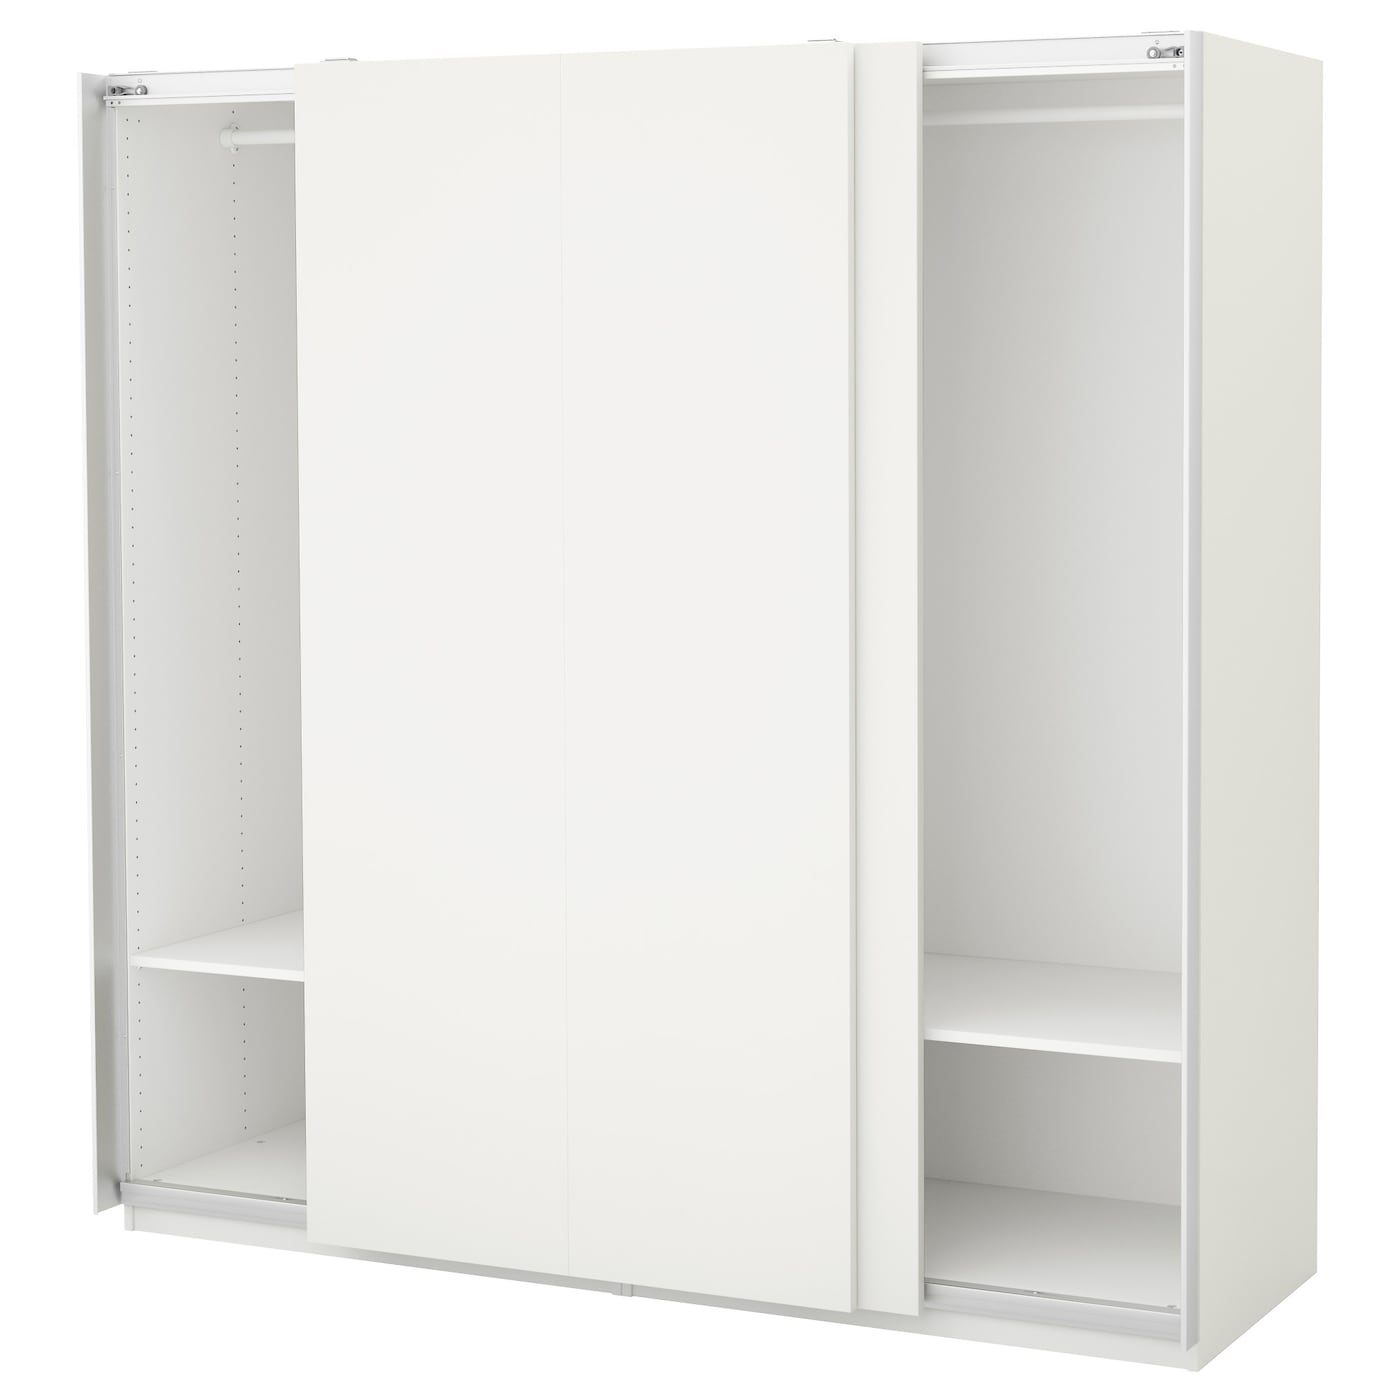 en ikea use in wardrobe qa terms pax privacy b store brochure policy systems of v inter range